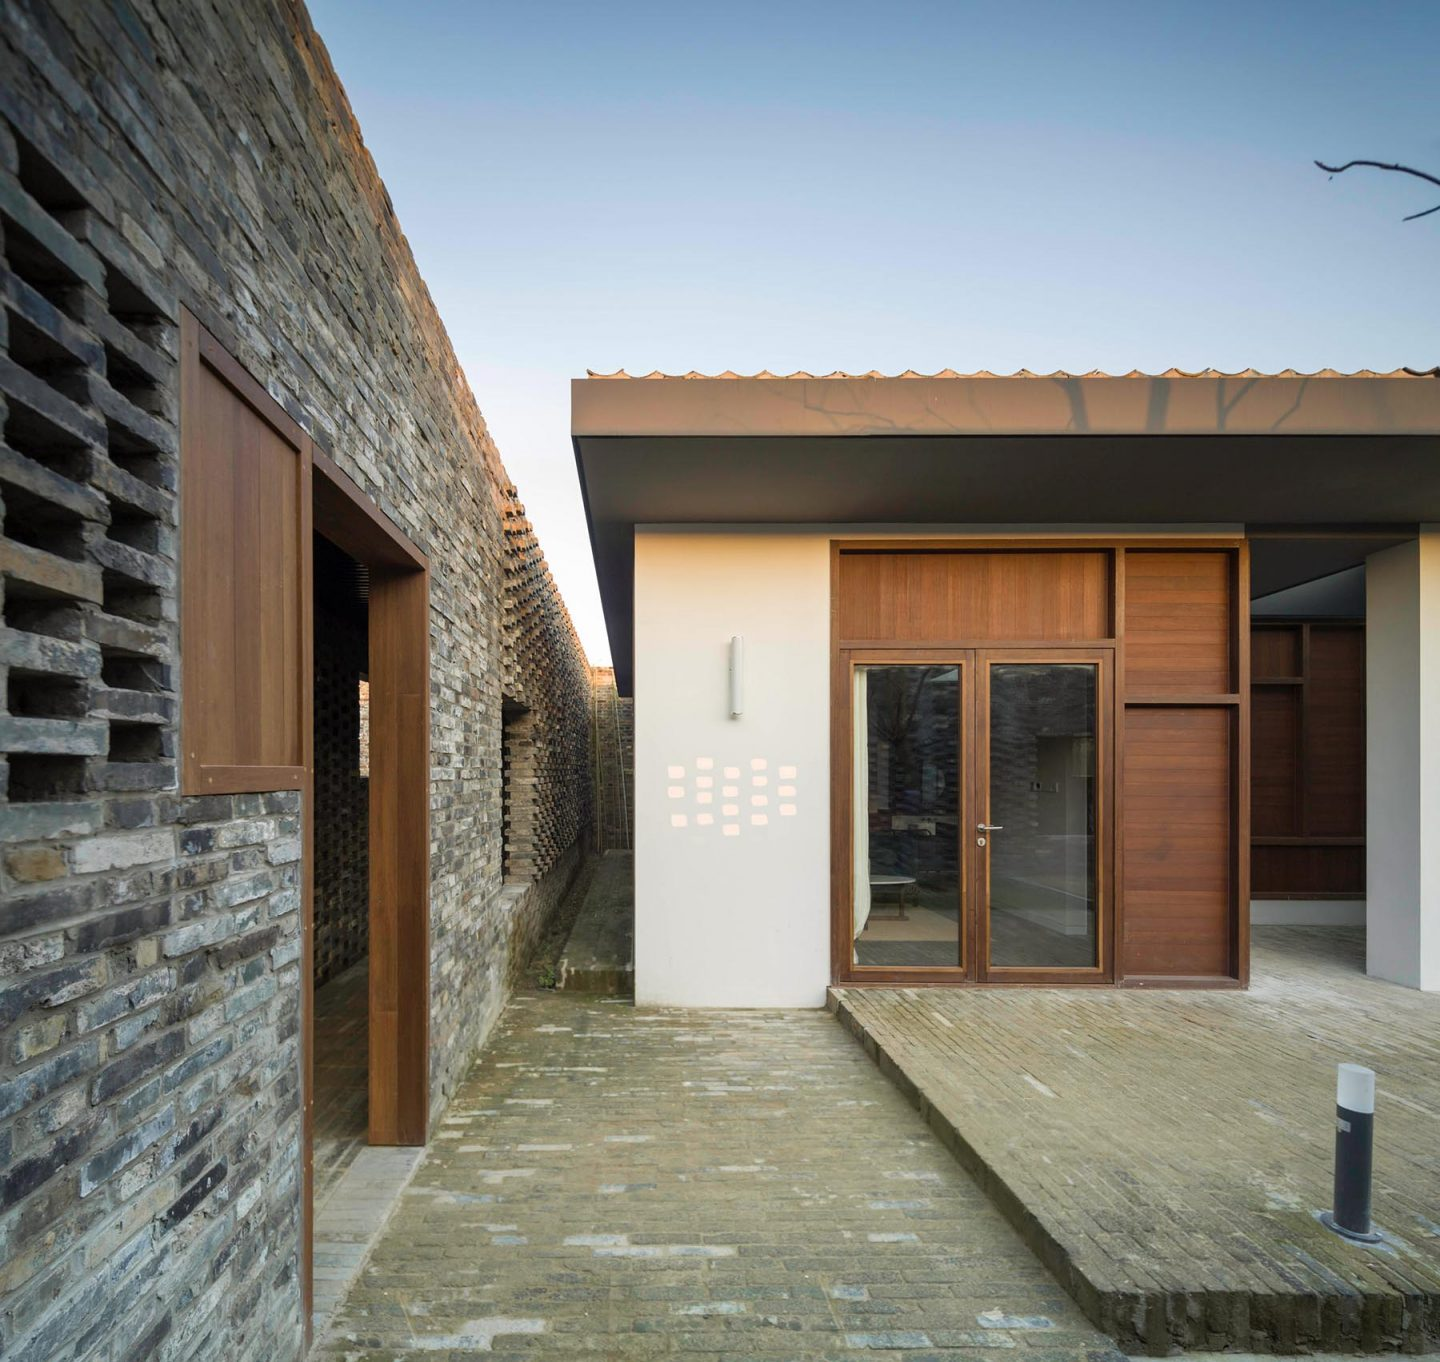 iGNANT-Architecture-Ner&Hu-Tsingpu-Yangzhou-Retreat--11